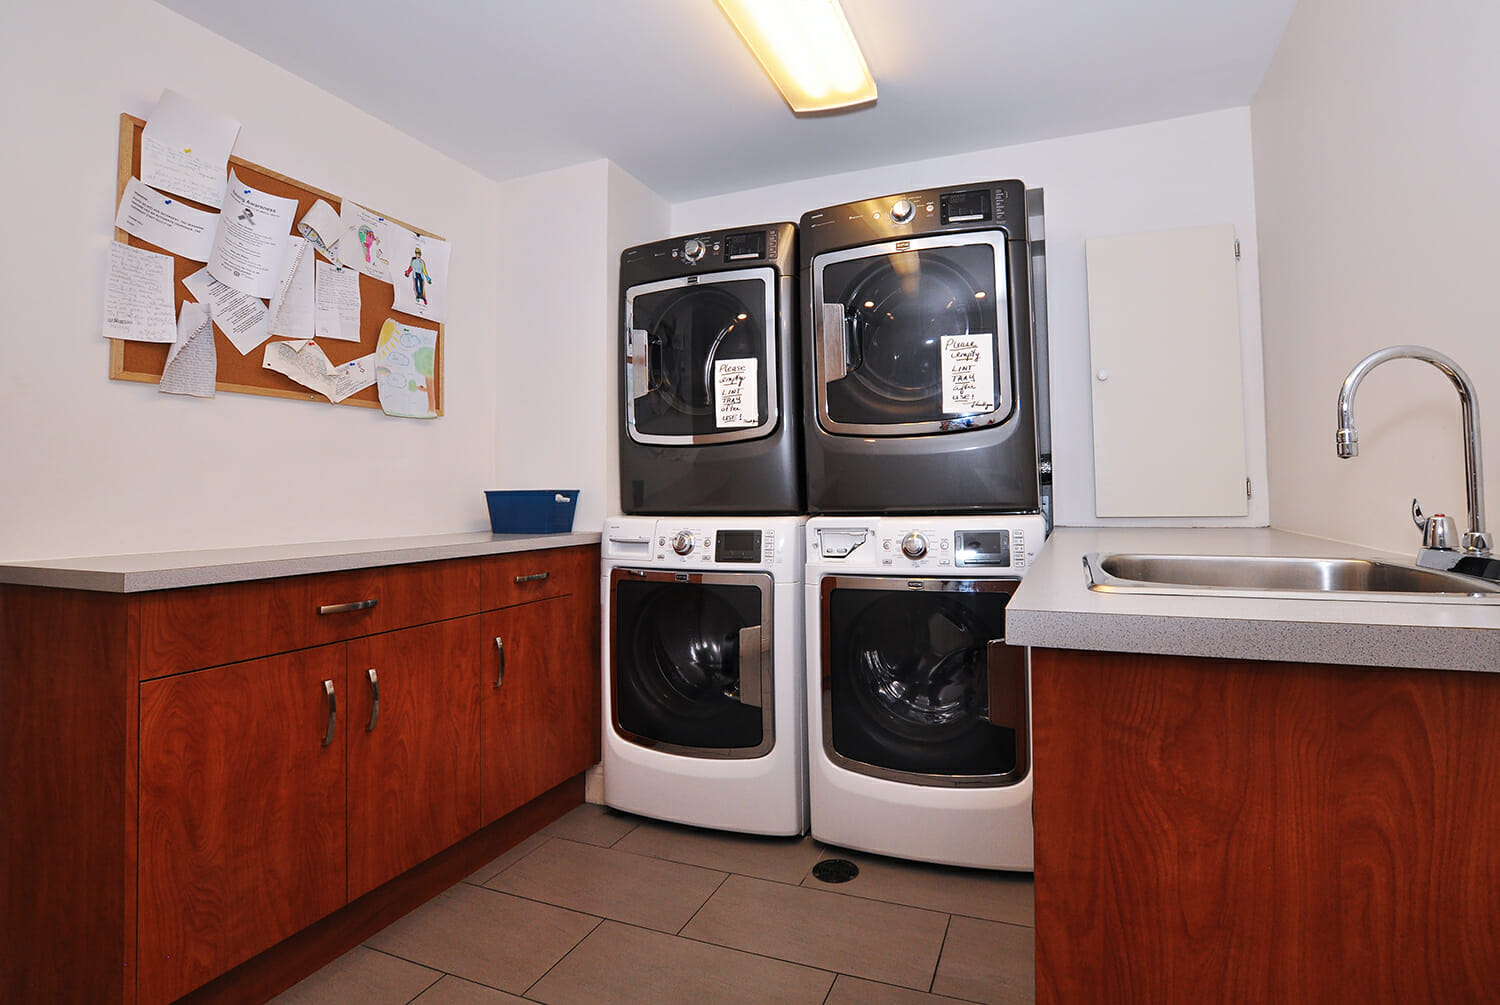 Laundry room at Munro Centre.